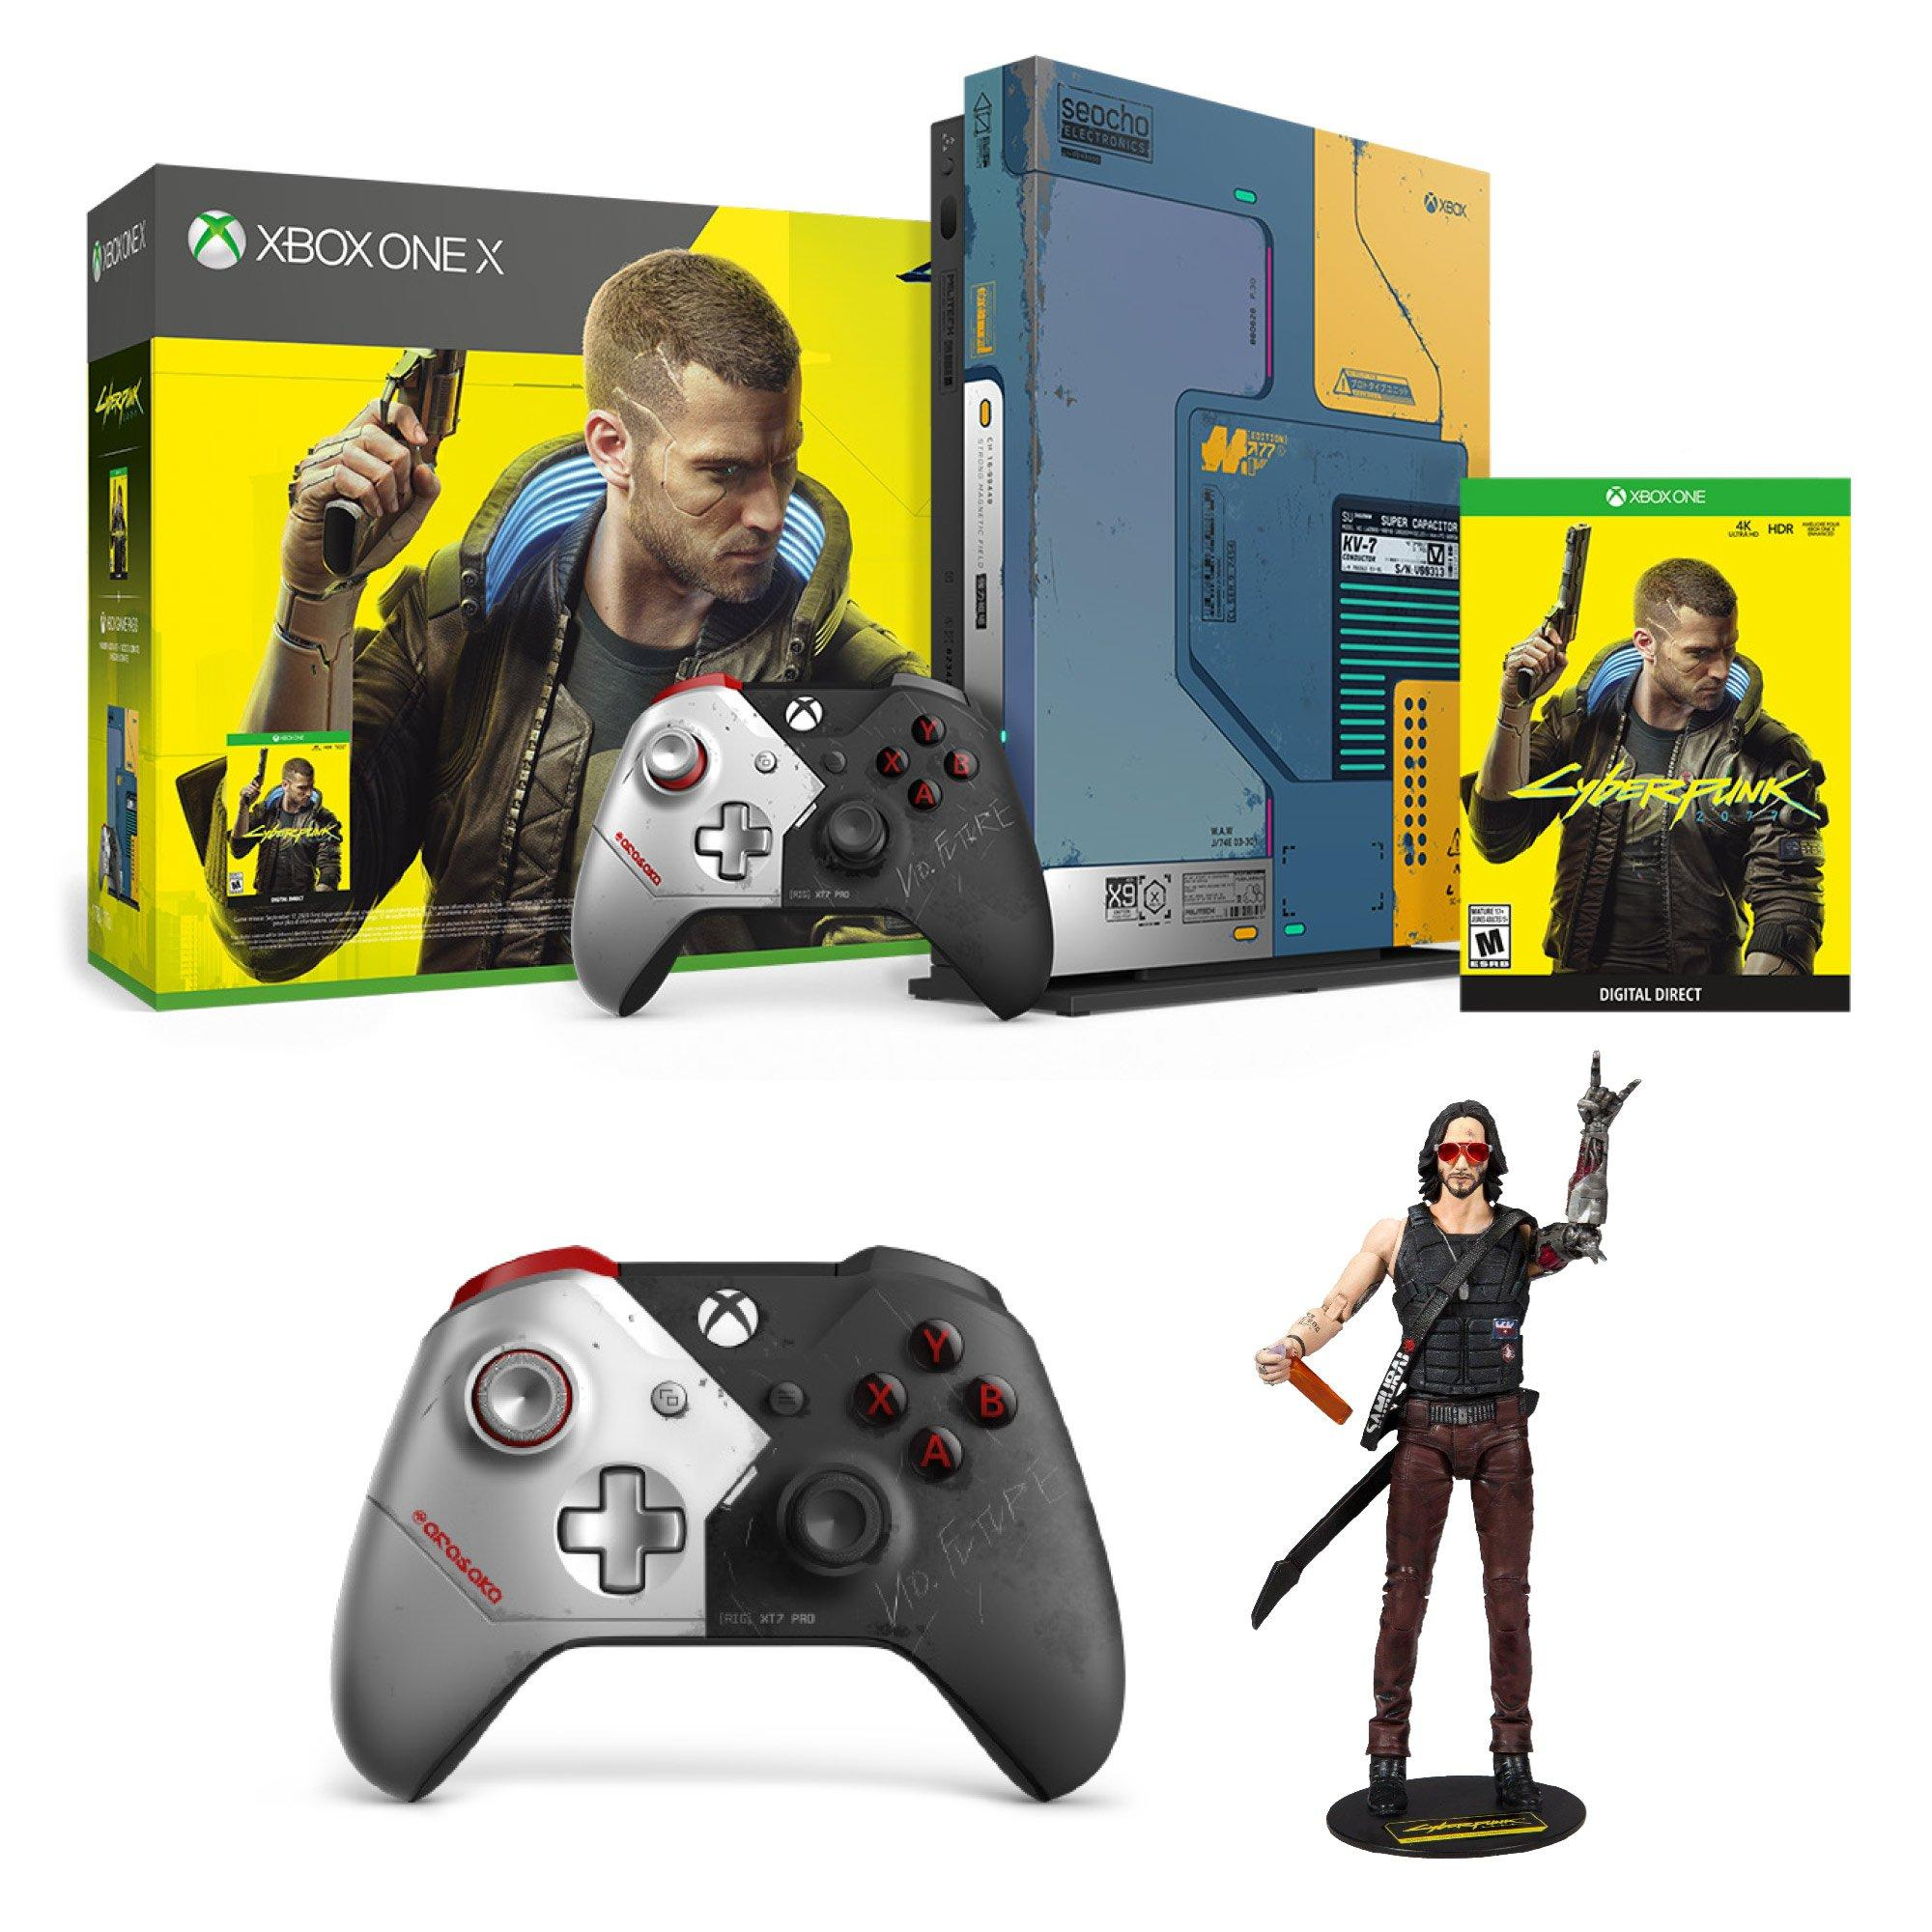 Microsoft Xbox One X 1TB Cyberpunk 2077 Limited Edition Console Bundle + Microsoft Xbox One Cyberpunk 2077 Wireless Controller + Cyberpunk 2077 Johnny Silverhand Action Figure